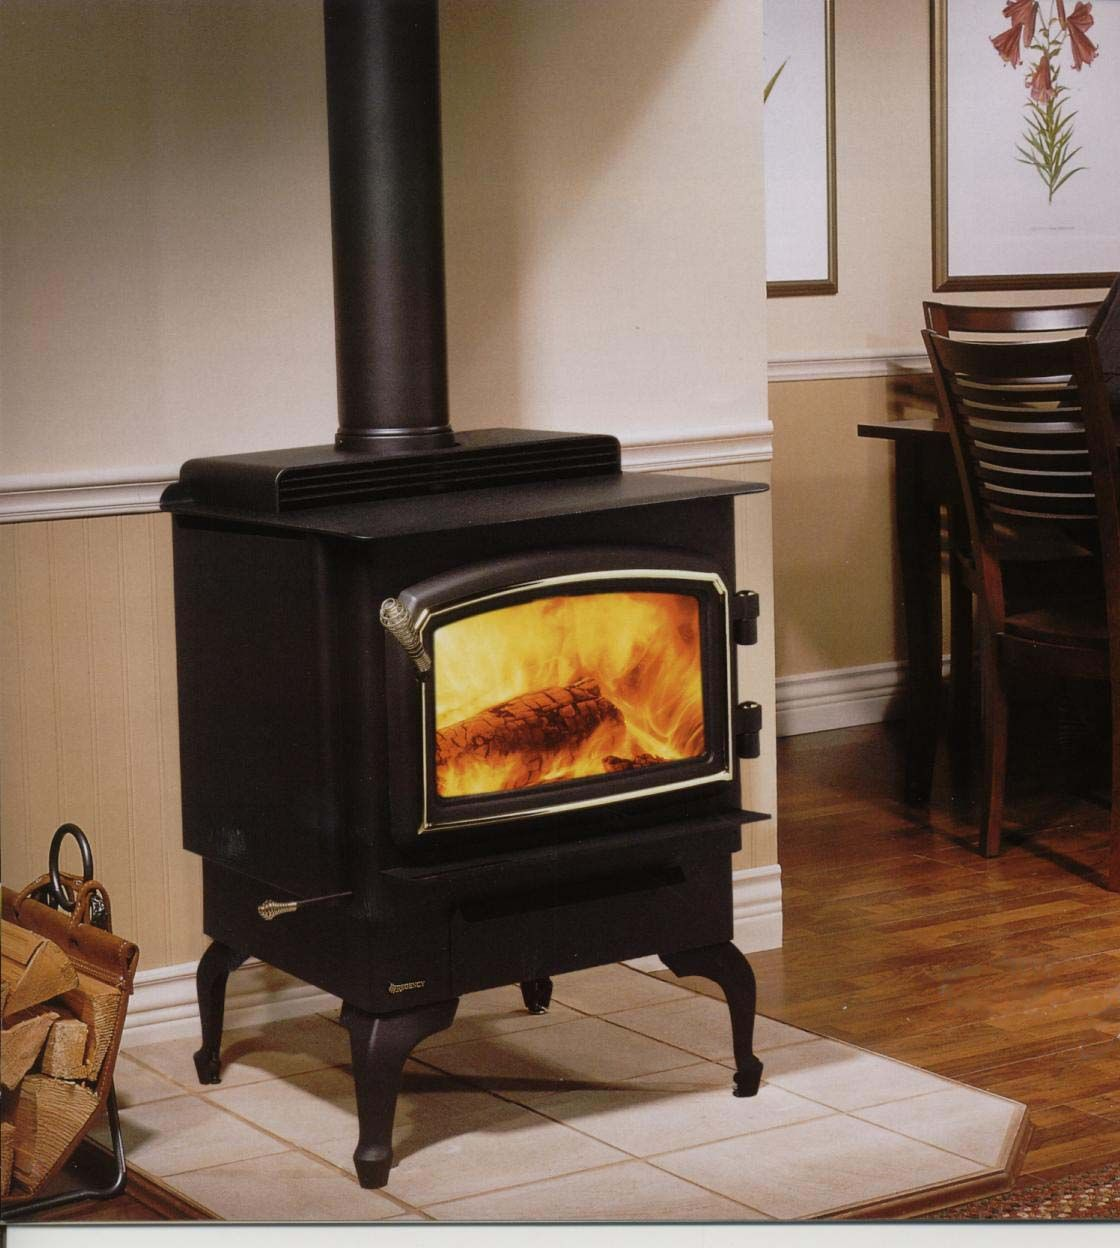 Jøtul Wood Burning Stove Wood Heater Wood Burning Fireplace Inserts Wood Burning Stove